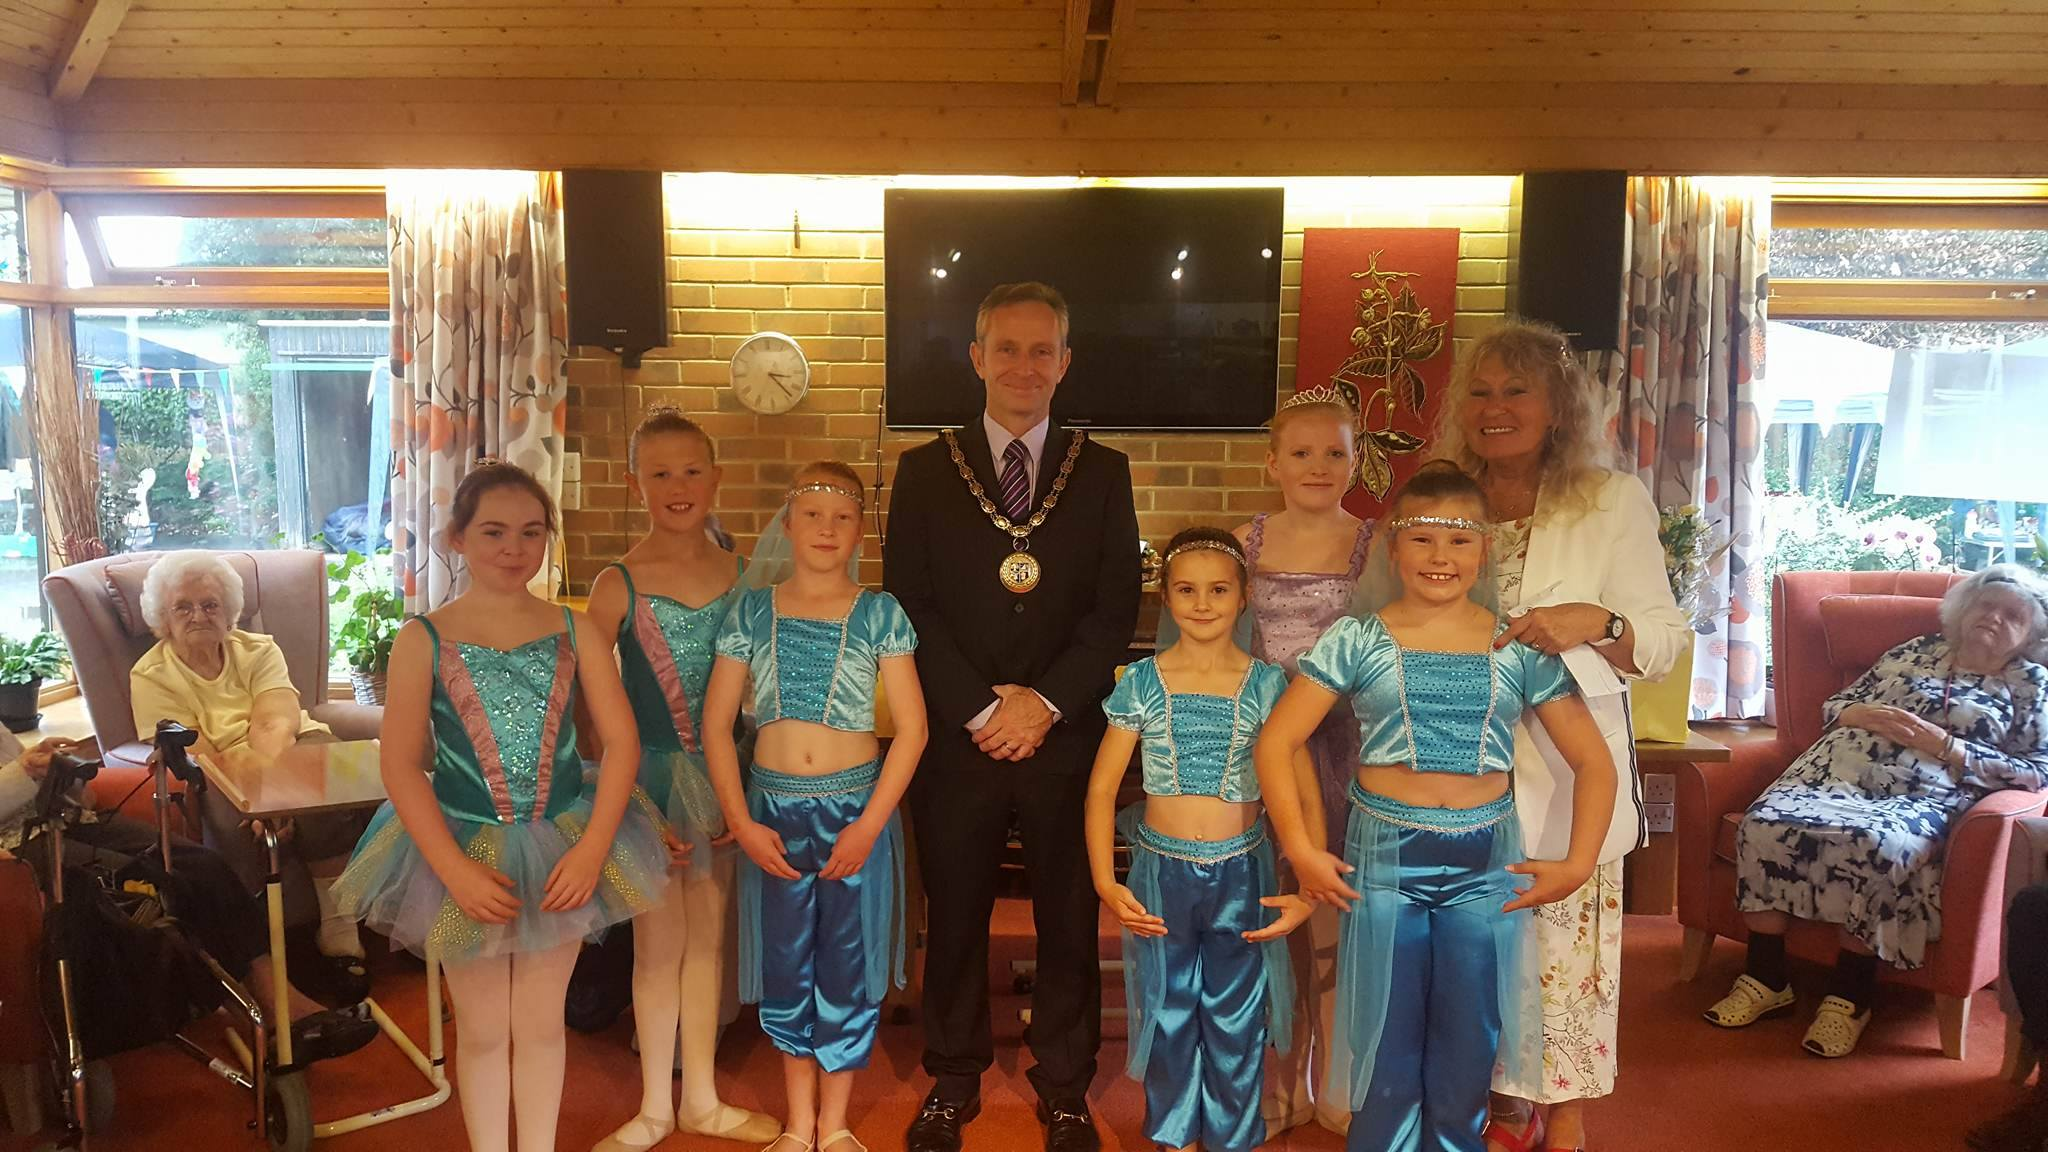 Care home performance with mayor